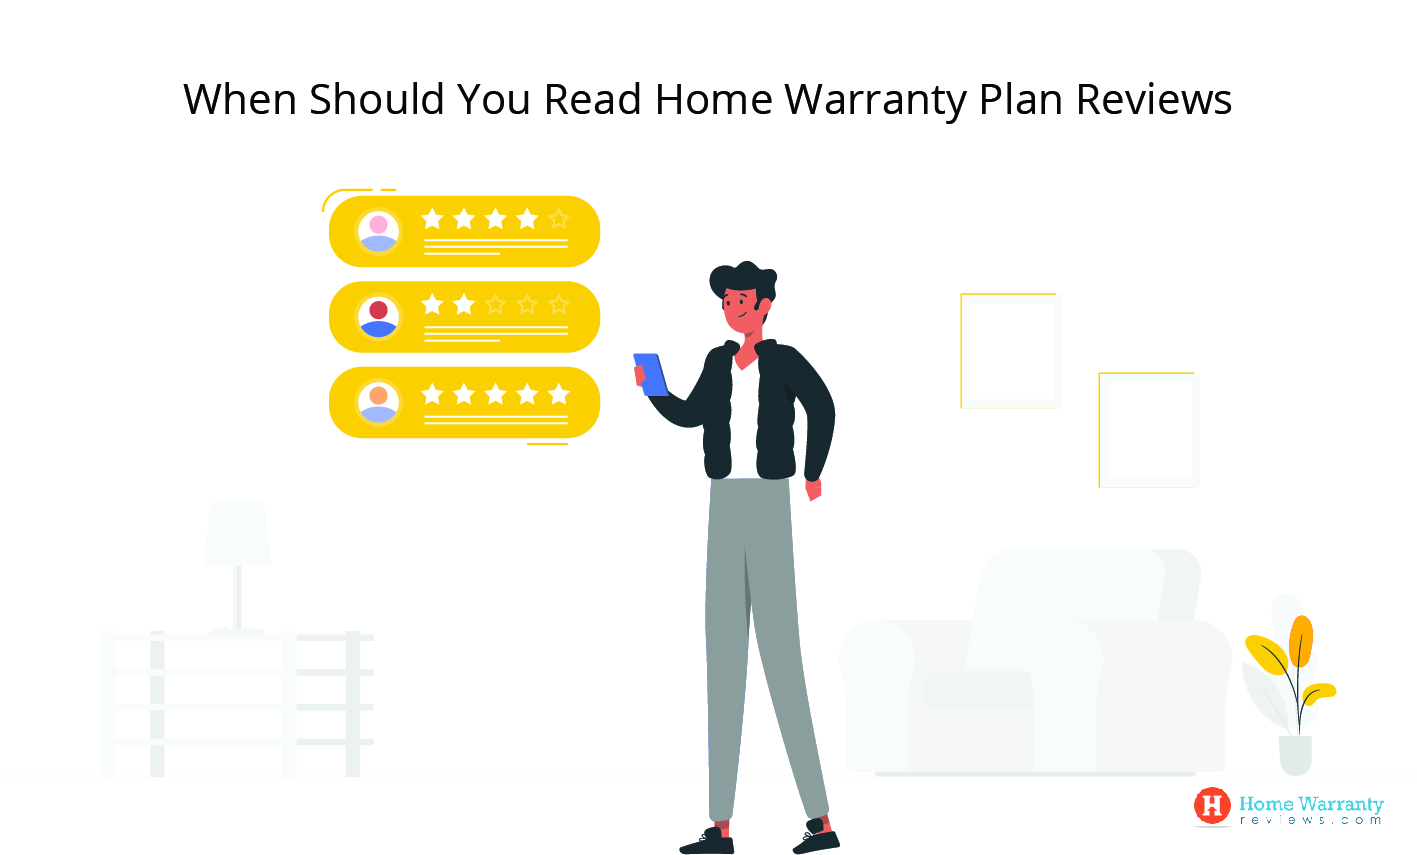 When Should You Read Home Warranty Plan Reviews?